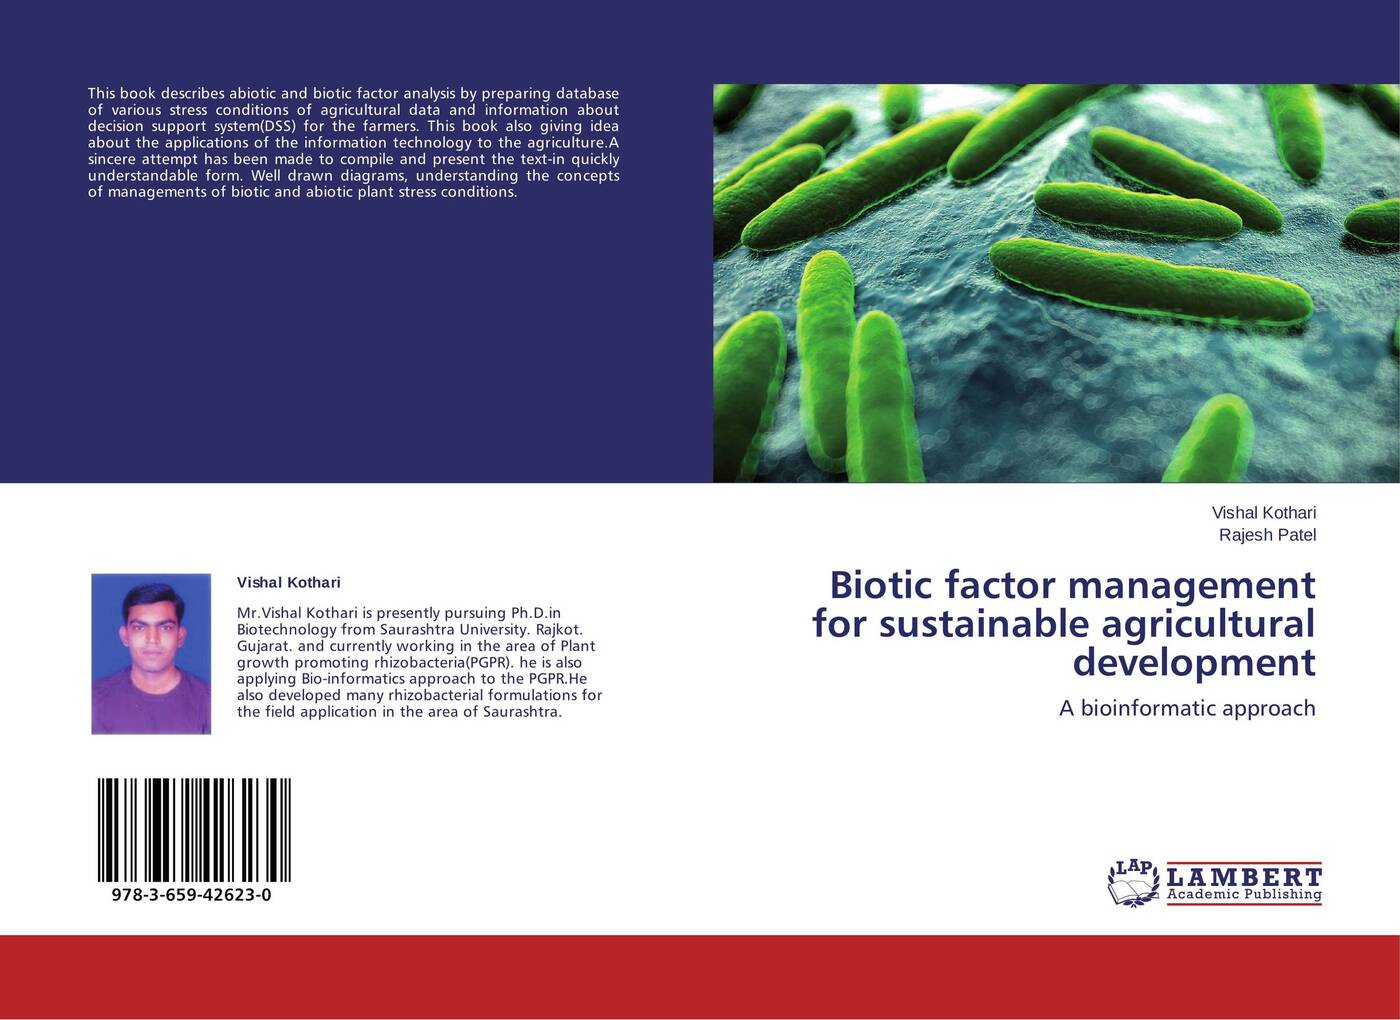 купить Vishal Kothari and Rajesh Patel Biotic factor management for sustainable agricultural development по цене 3961 рублей